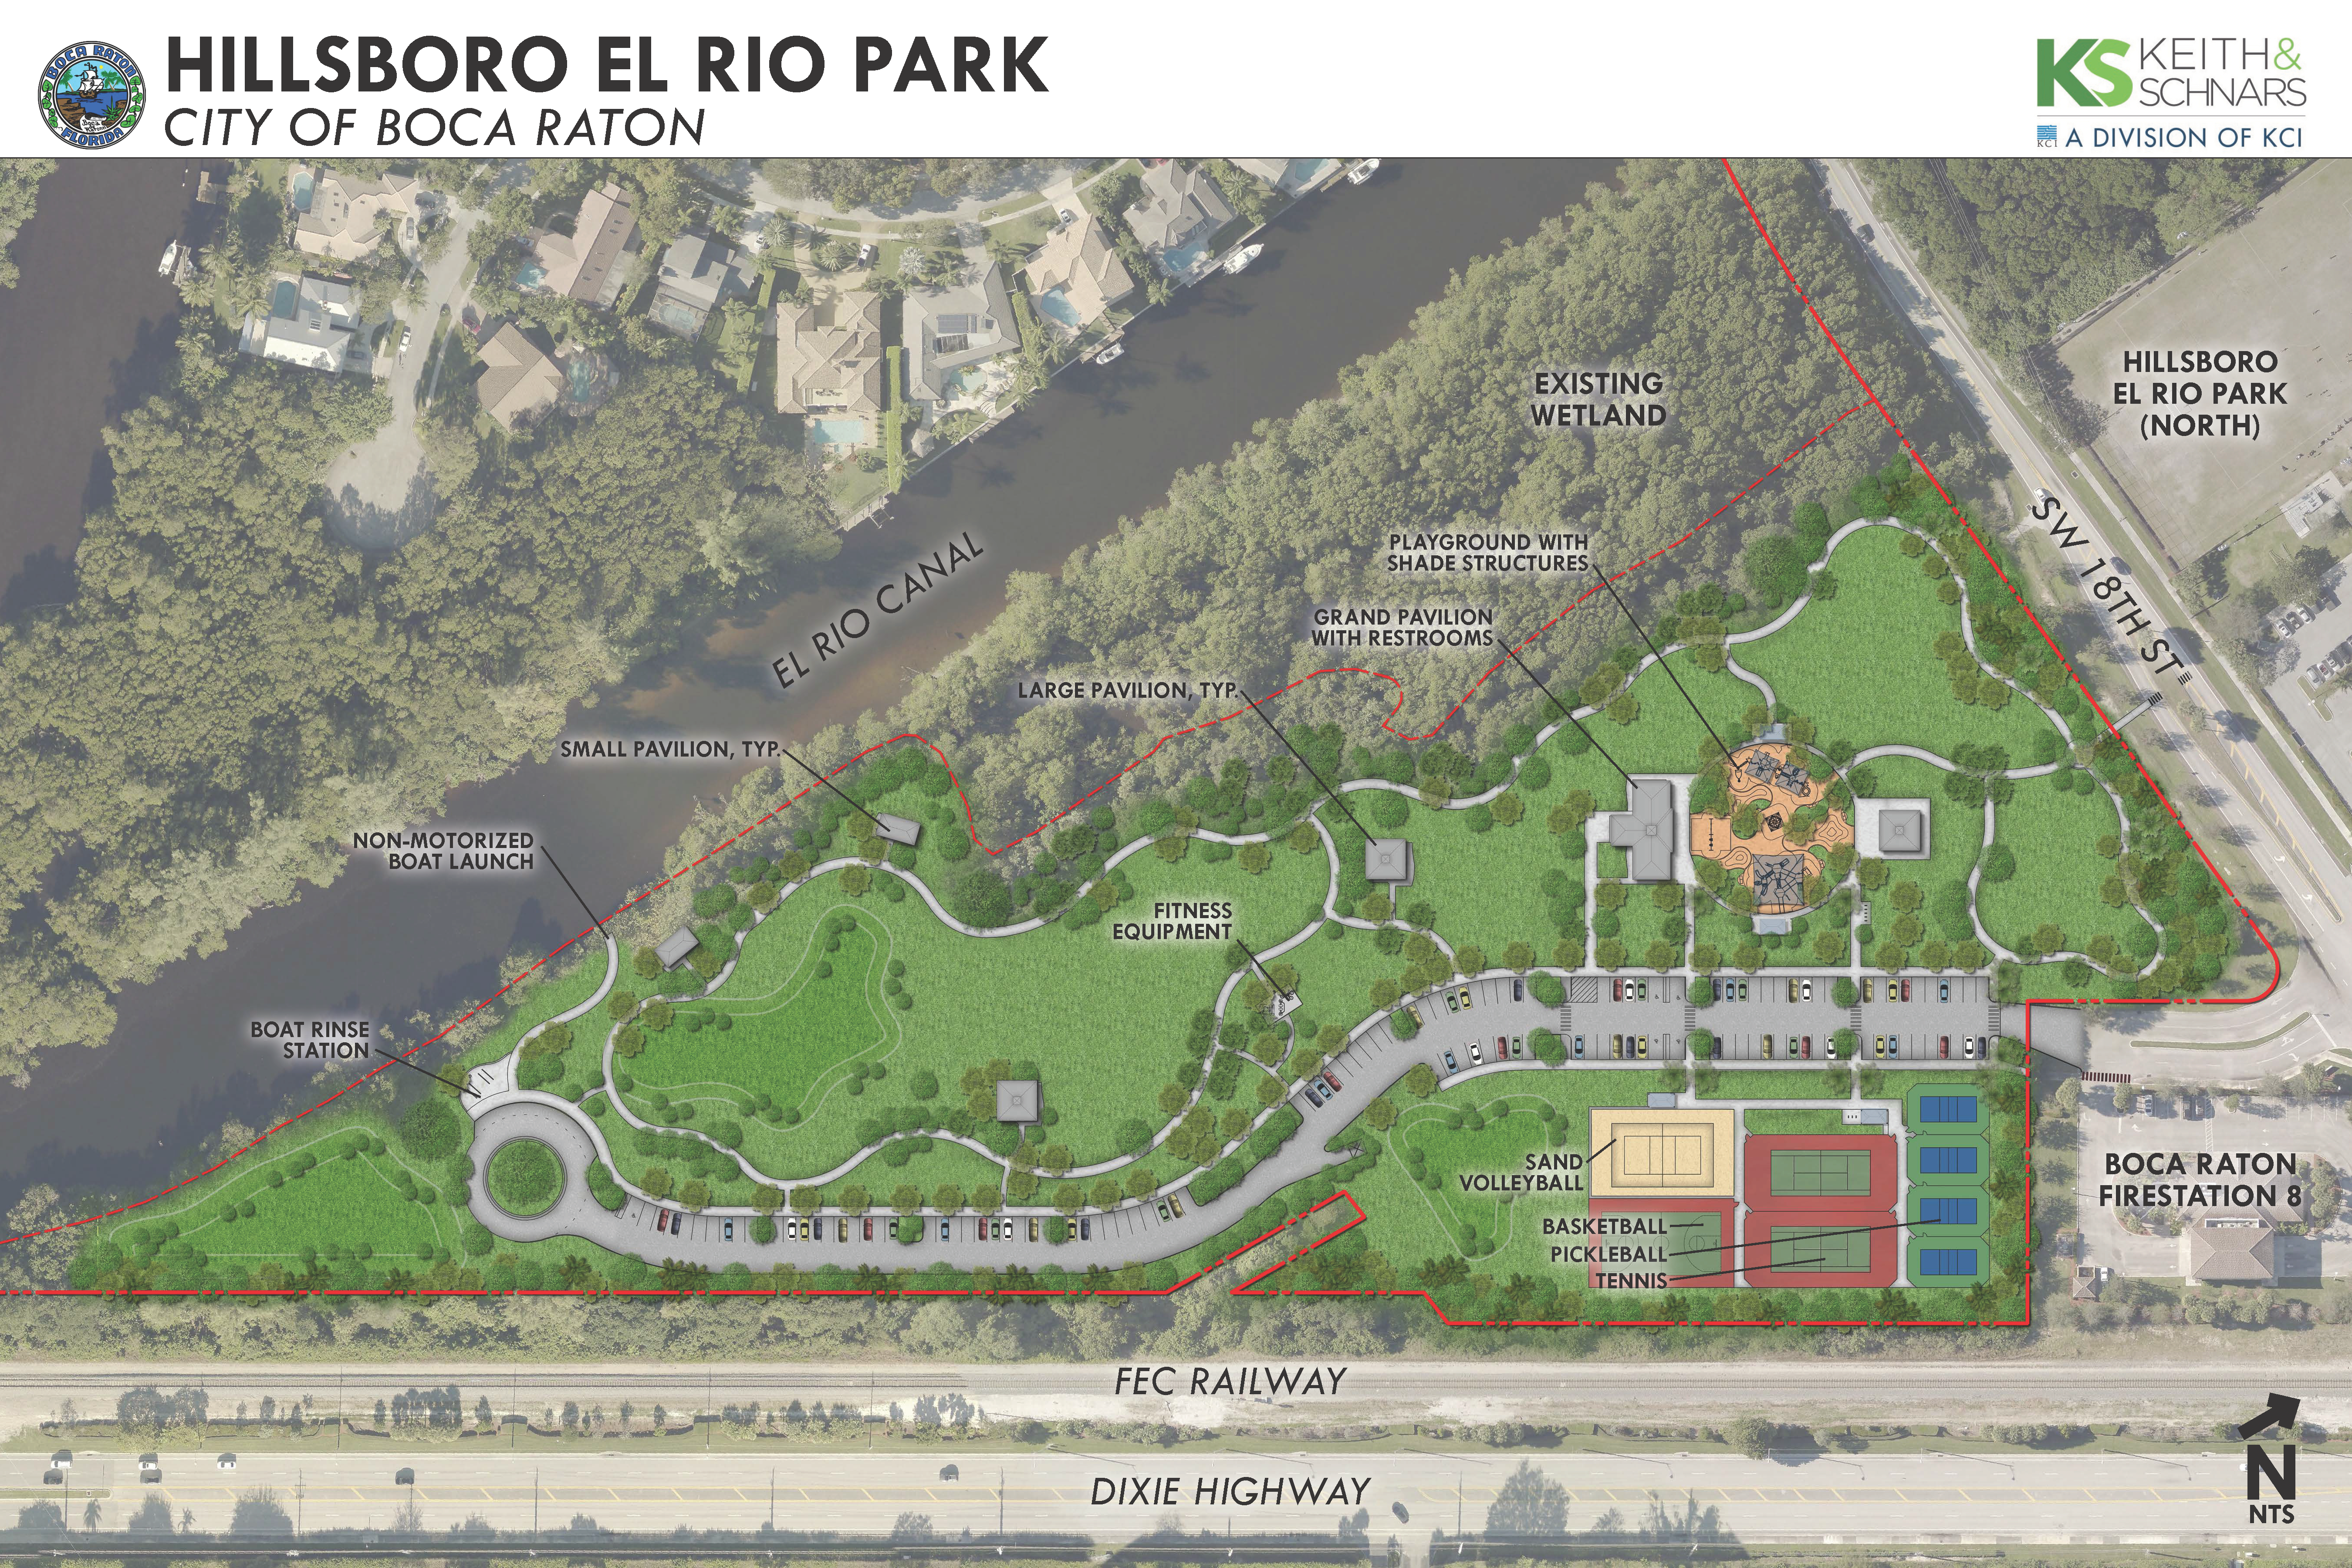 Hillsboro El Rio Park, City of Boca Raton site rendering. KS Keith and Schnars, a Division of KCI Opens in new window